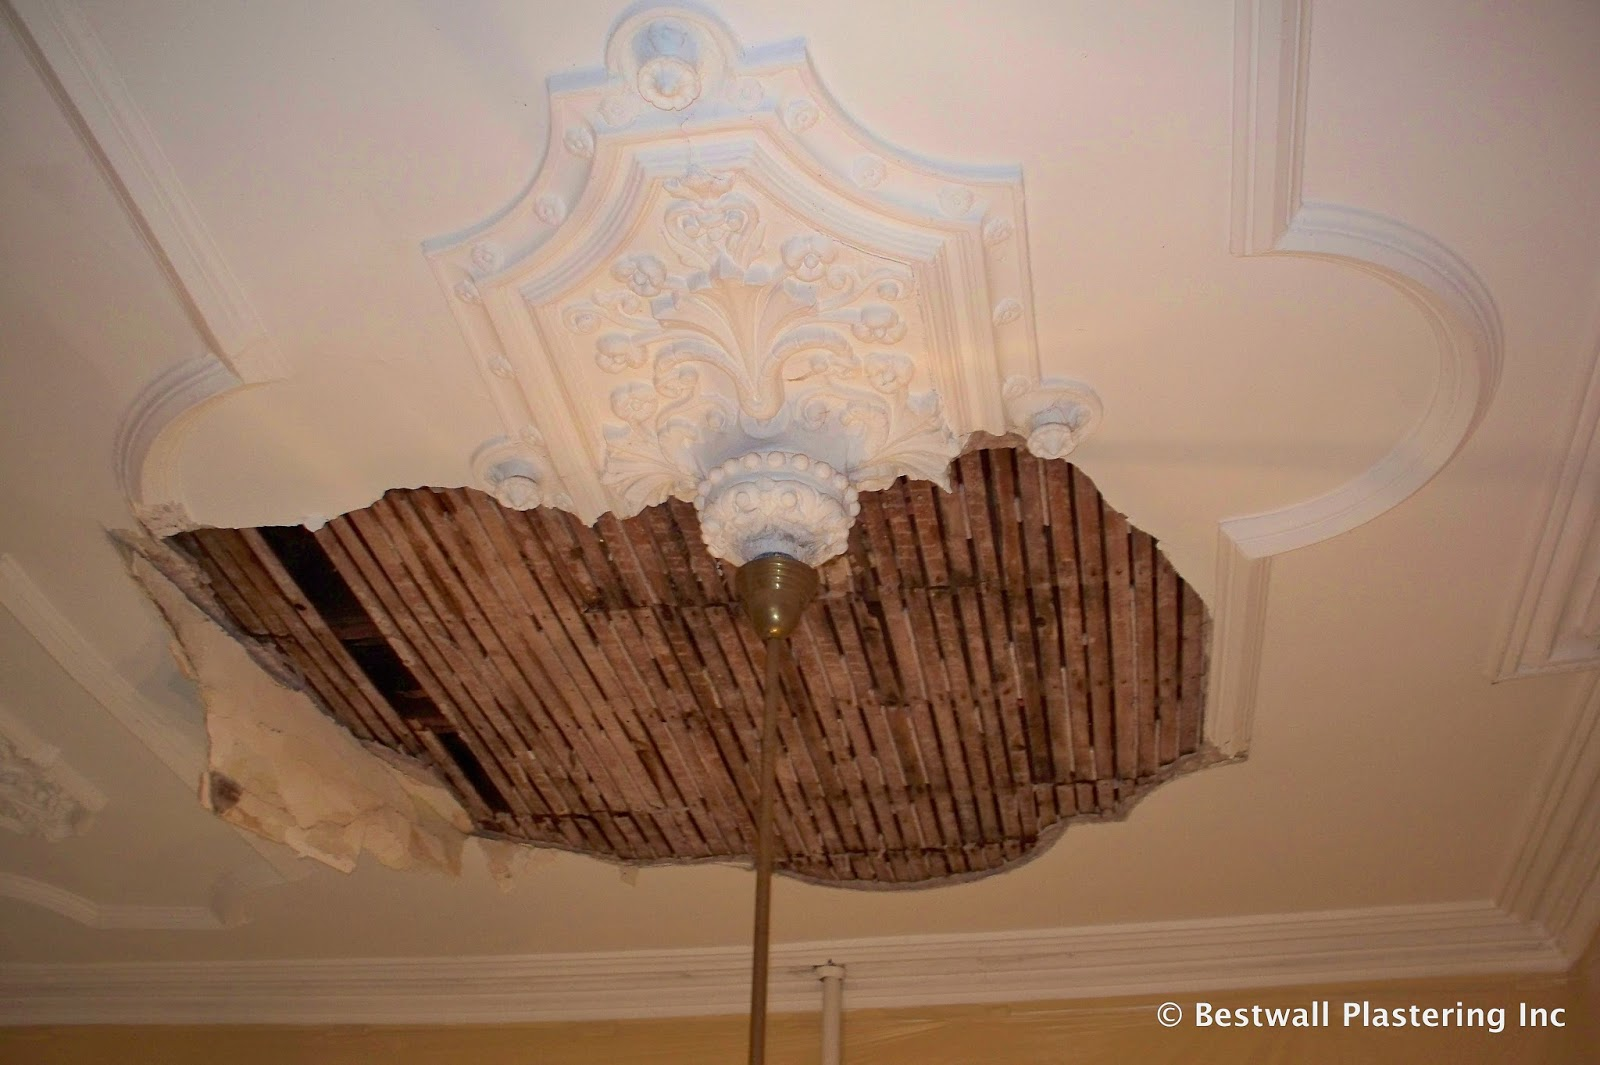 Ornate Plaster Ceiling Collapsed Caused By Water Damage